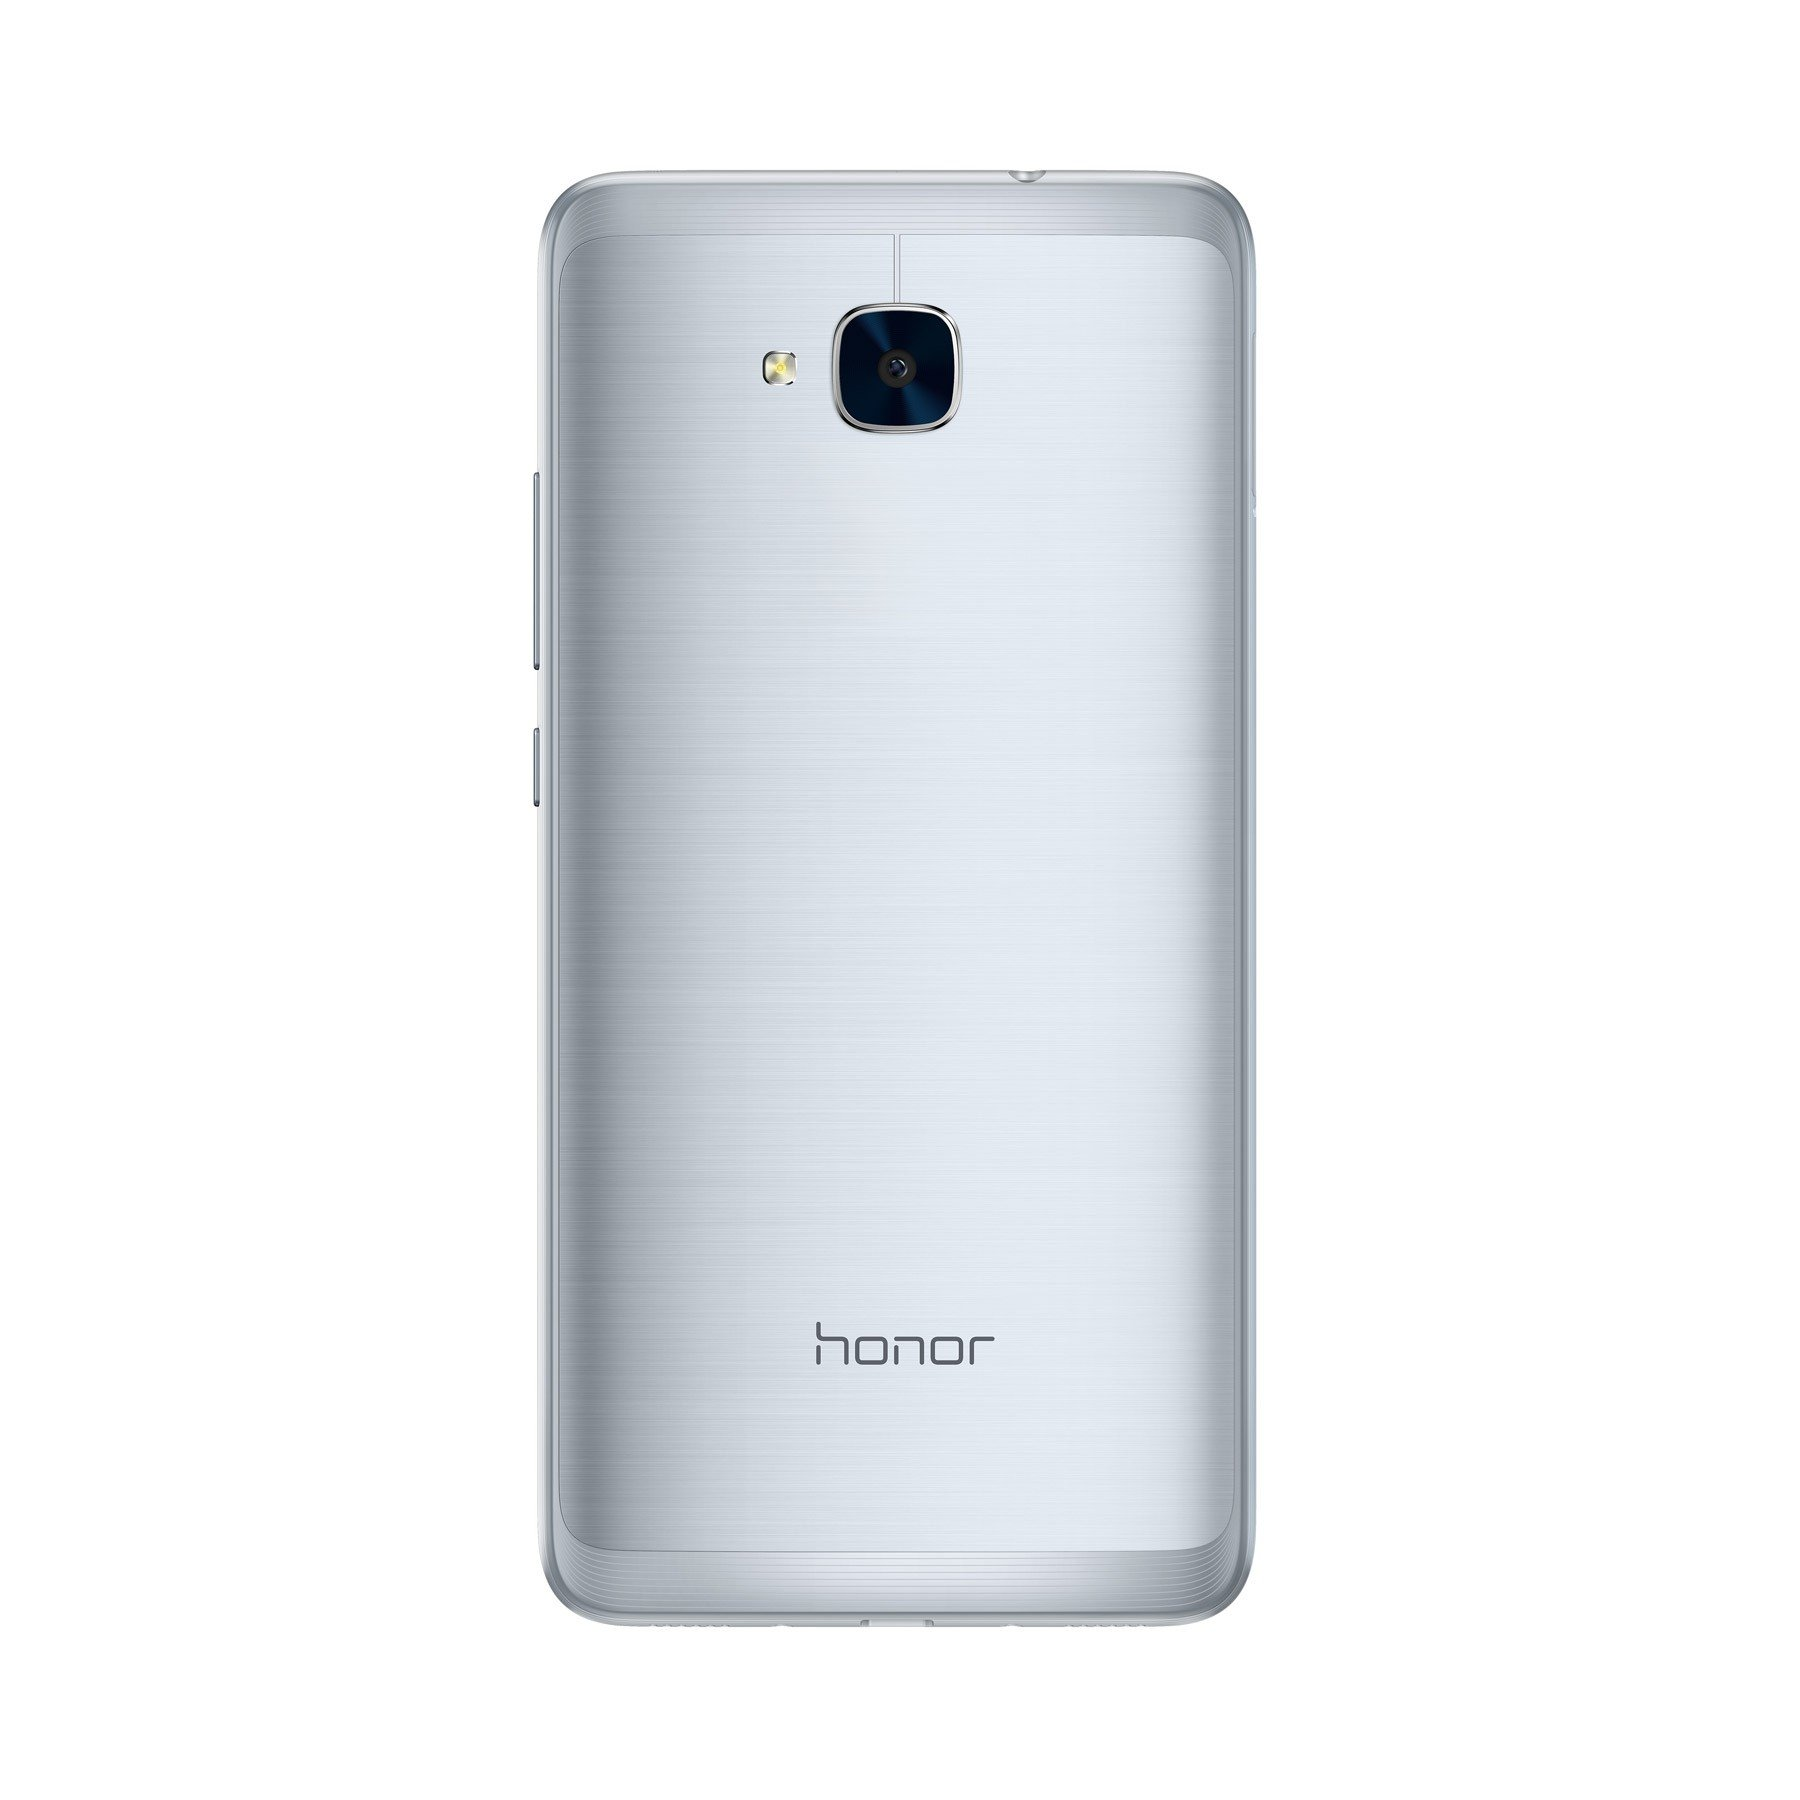 huawei honor 5c specs review release date phonesdata. Black Bedroom Furniture Sets. Home Design Ideas